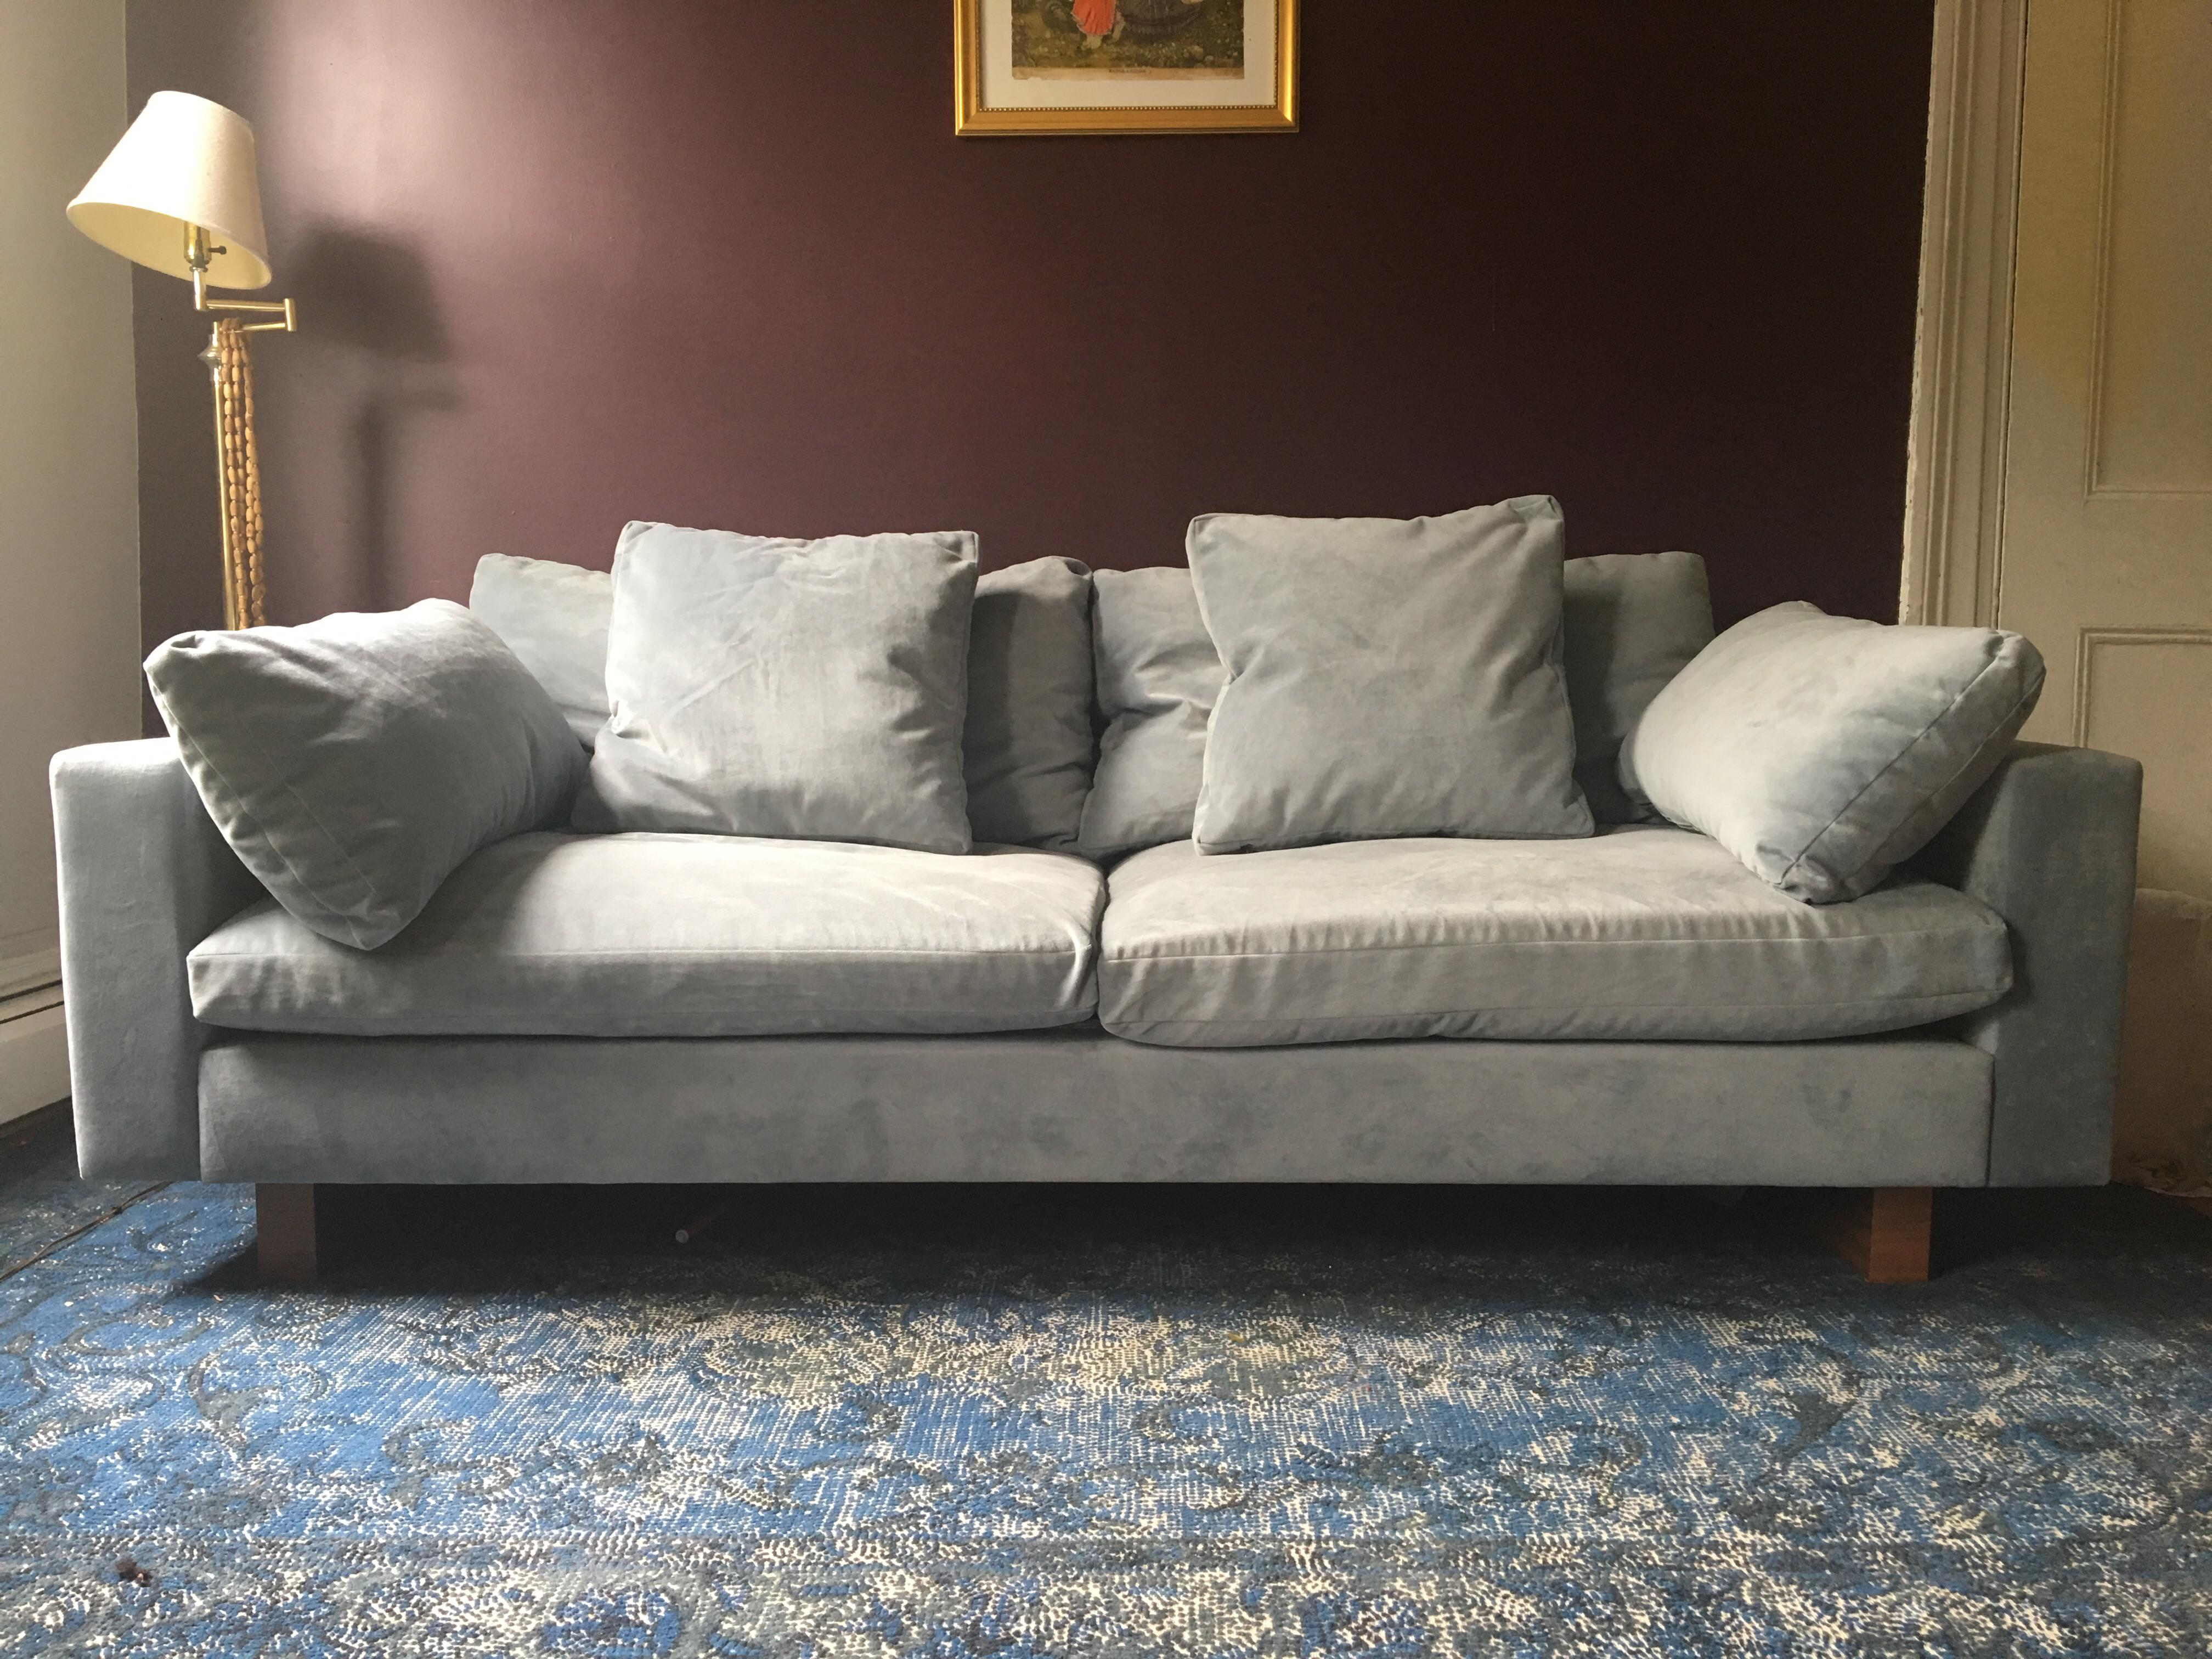 Purchased This Sofa In Feb. Had It Delivered In May And Now Moving Overseas  And. Contemporary West Elm Contemporary ...